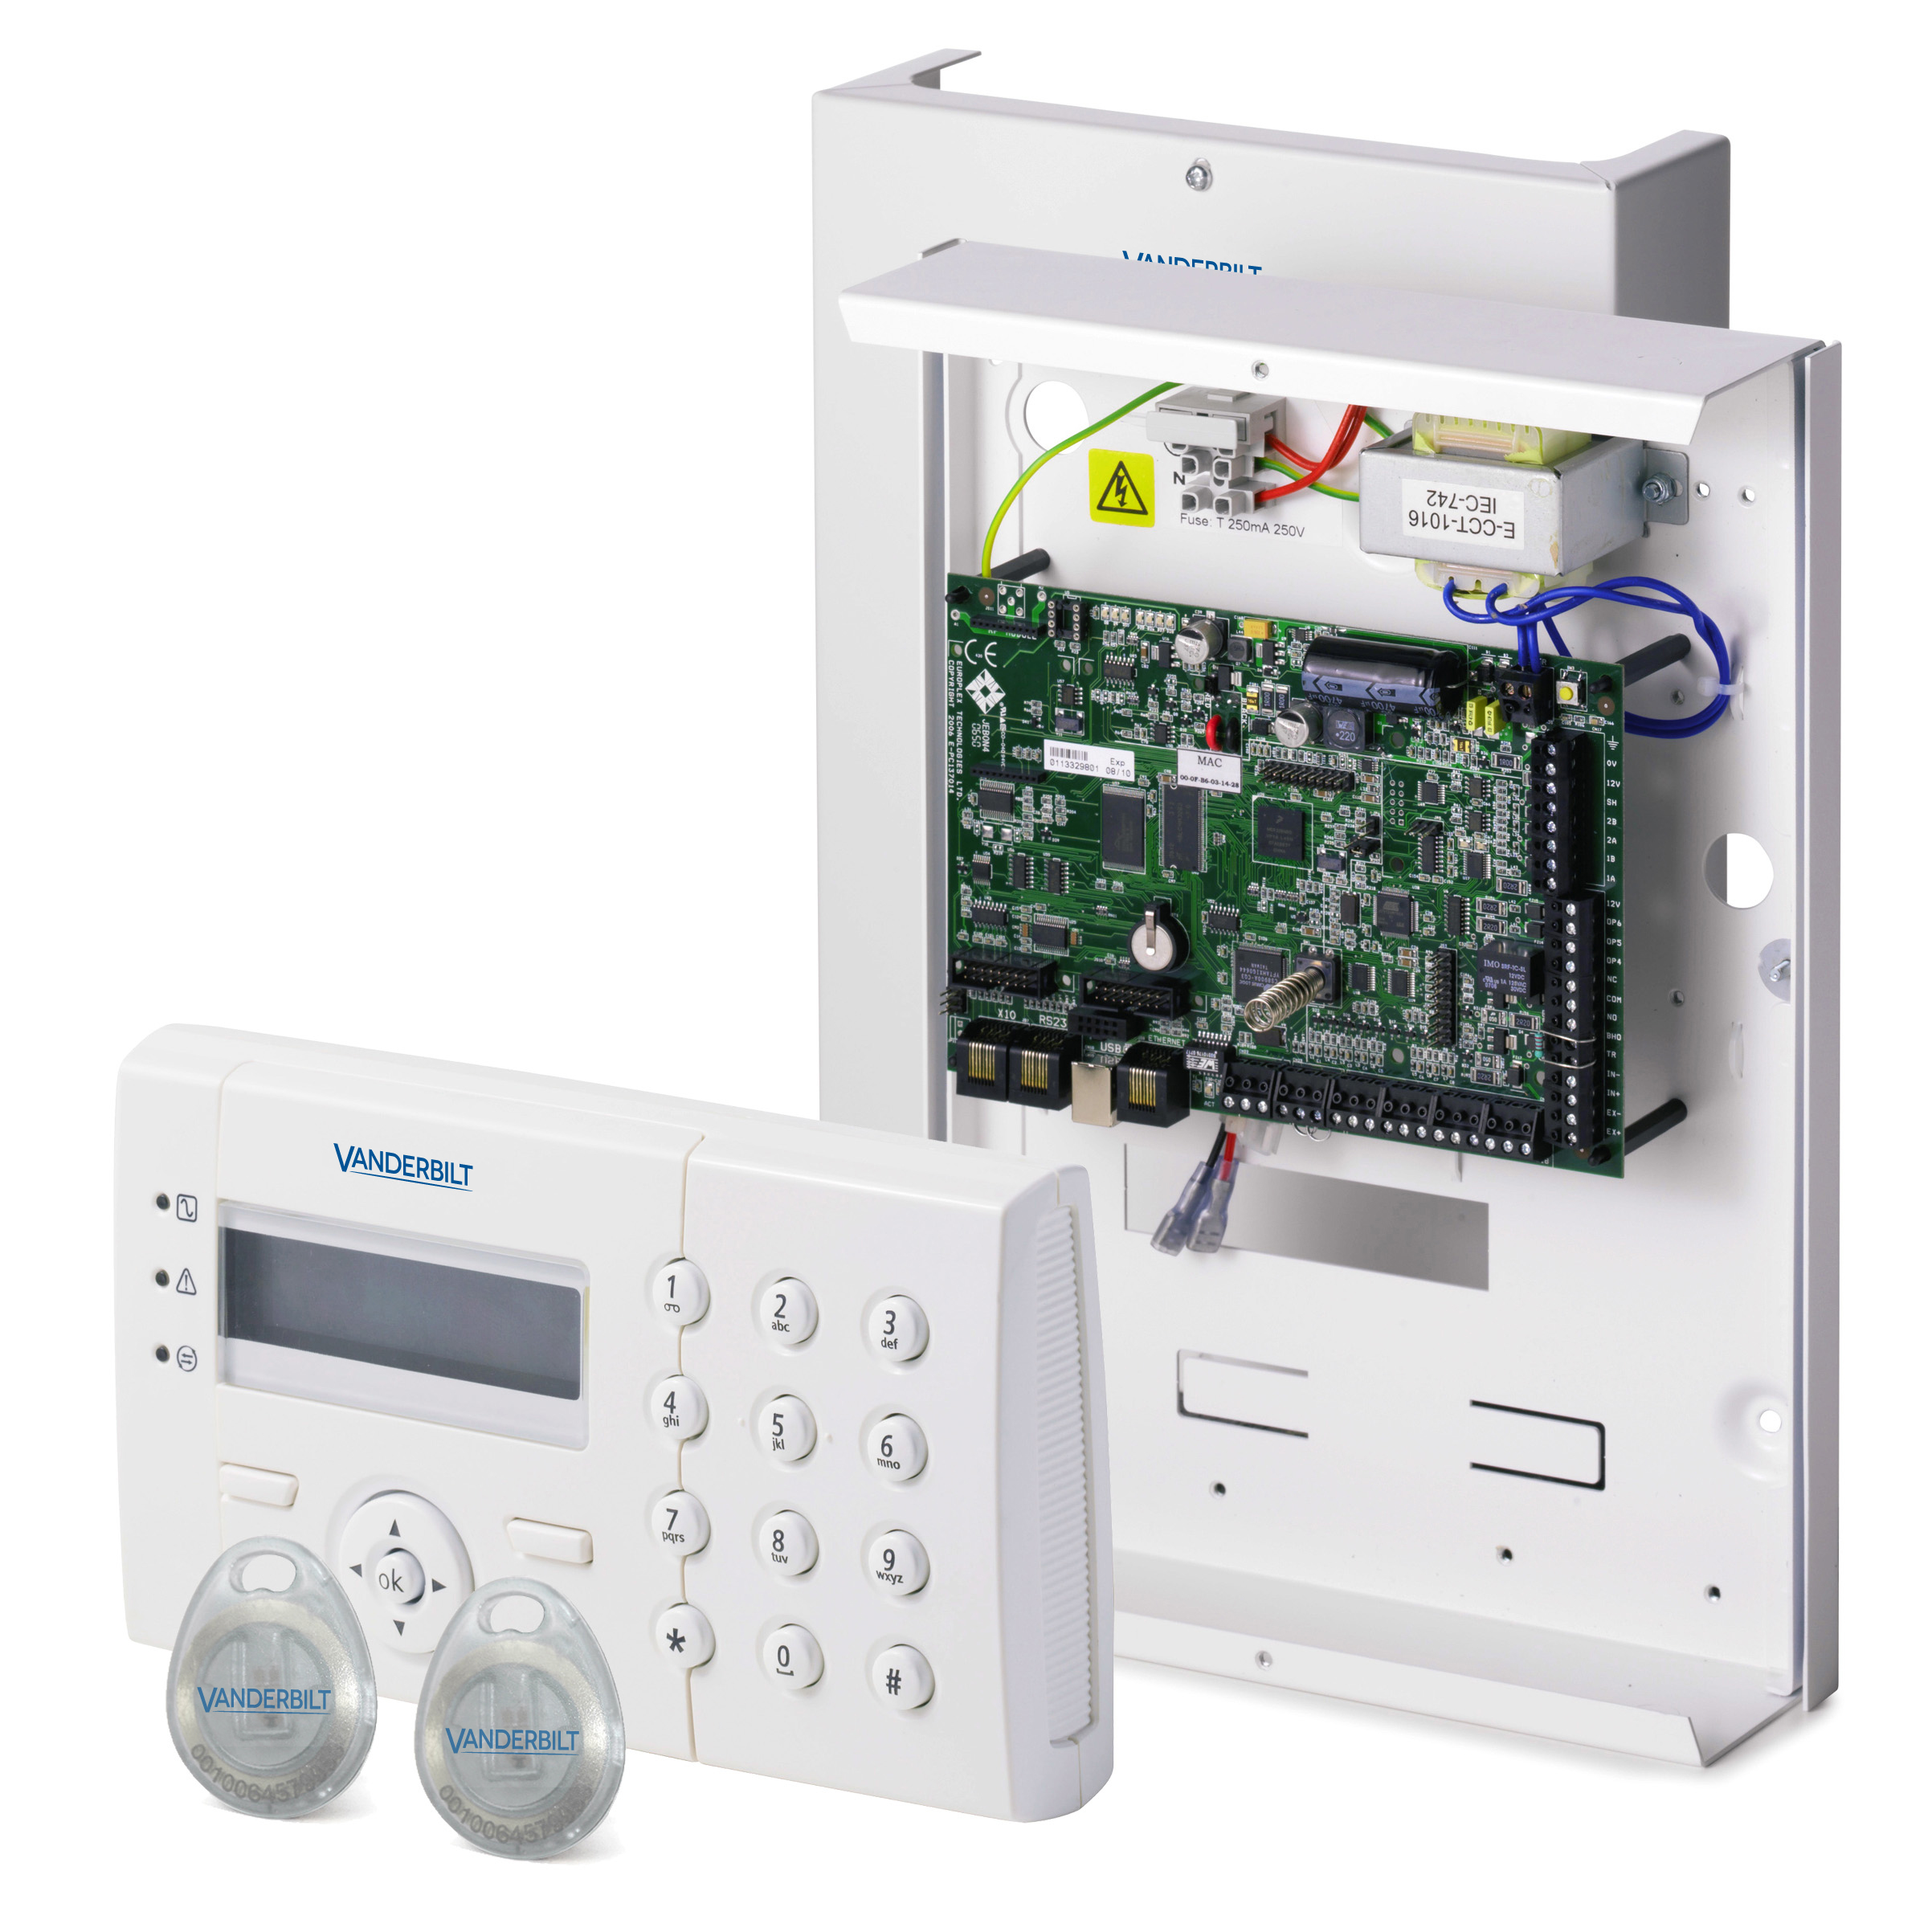 SPC4320.320 KIT with LCD keypad and CR